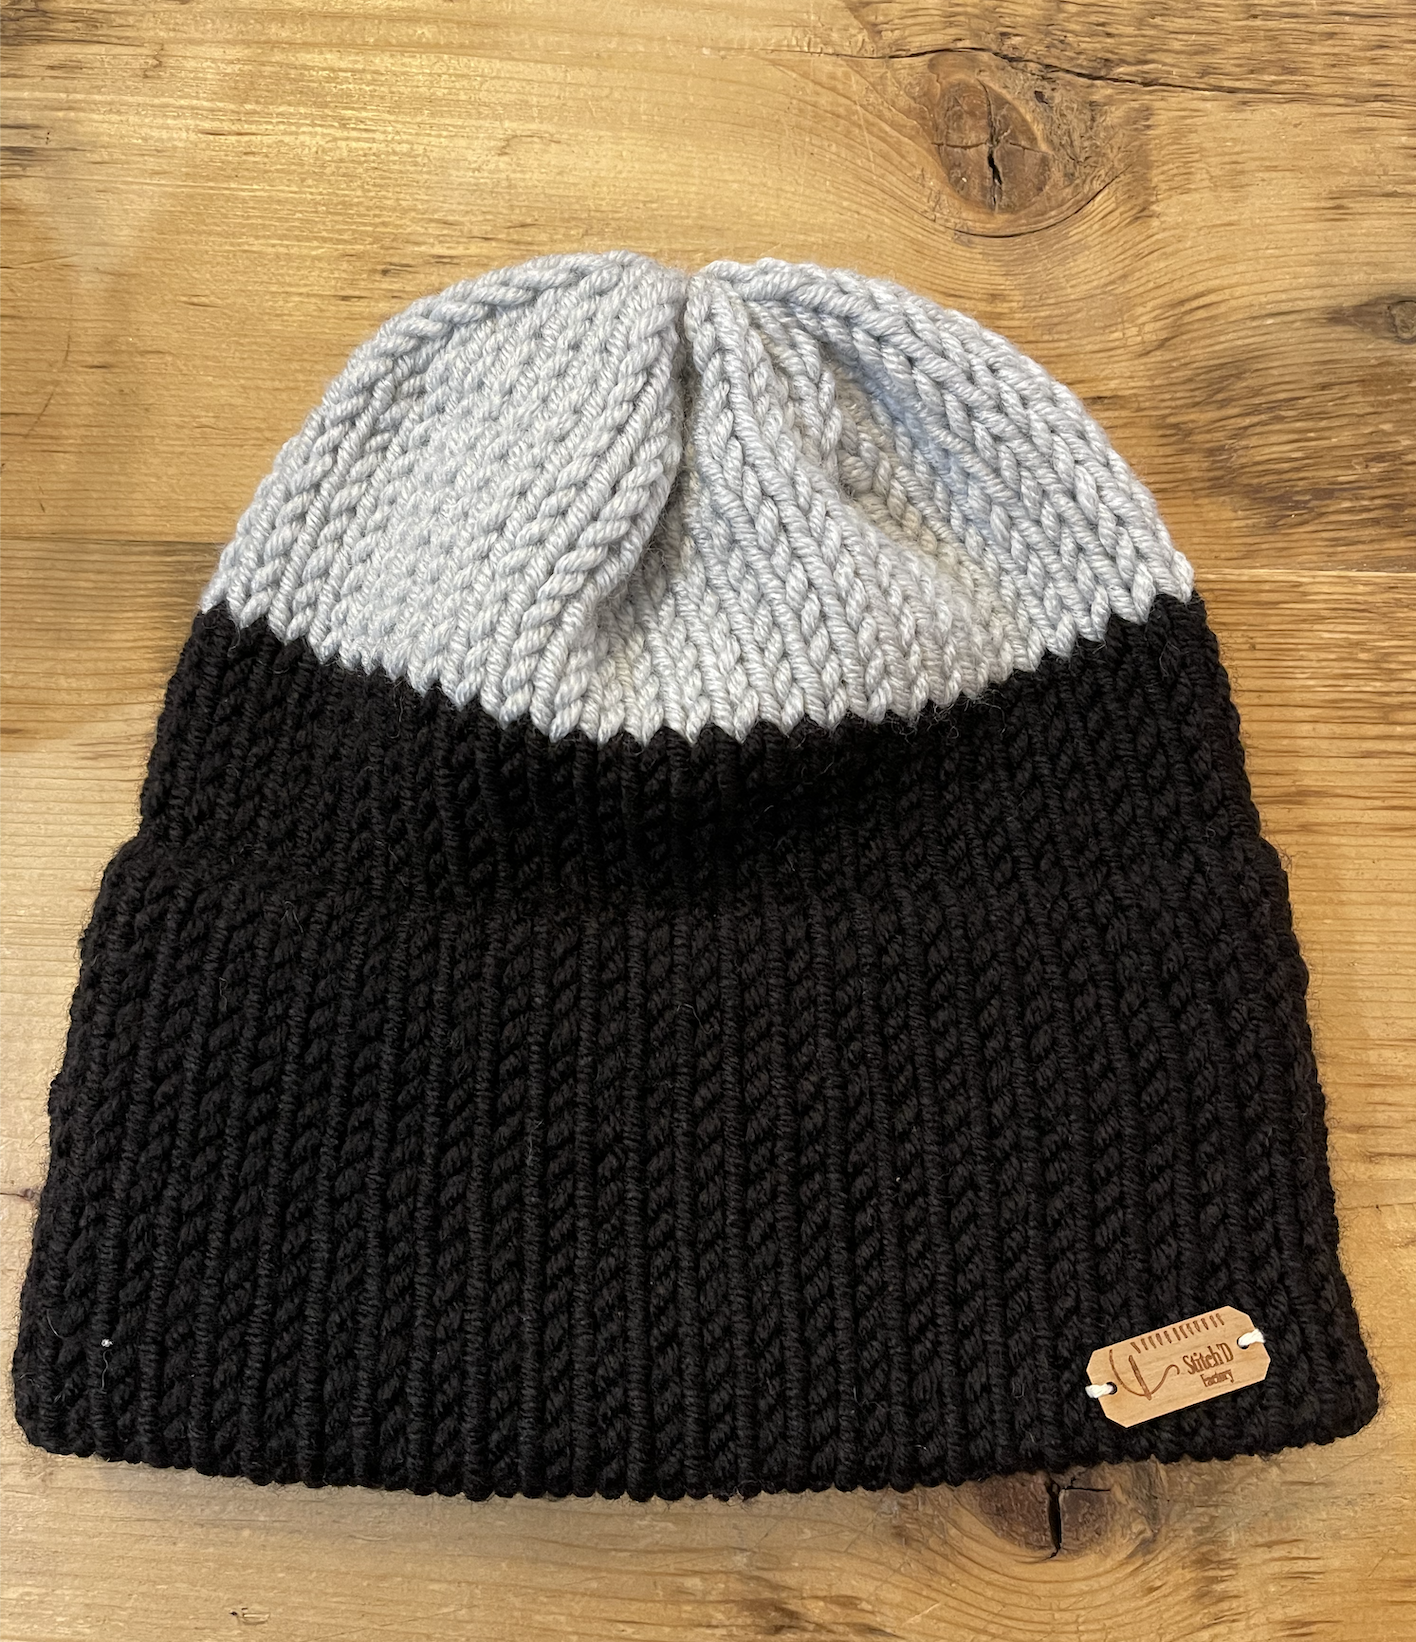 Stitch'D Factory Bac N Brooklyn Beanie-Grey/Black-FINAL SALE